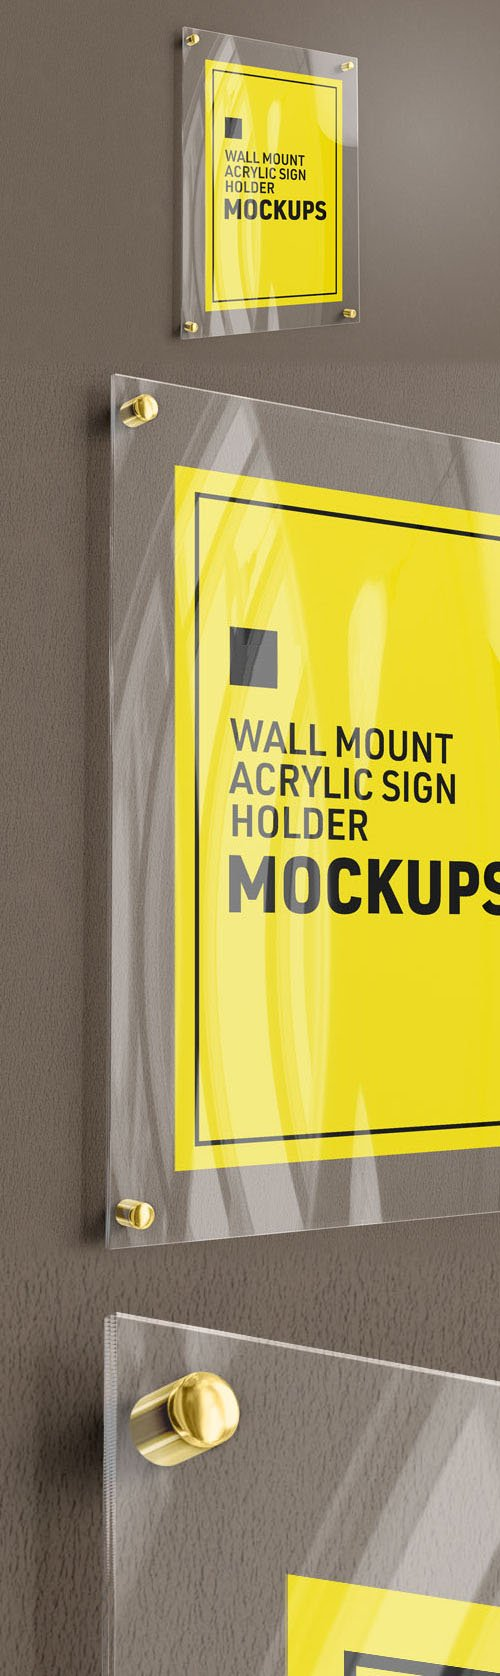 Wall Mount Glass Sign Holder PSD Mockup Template